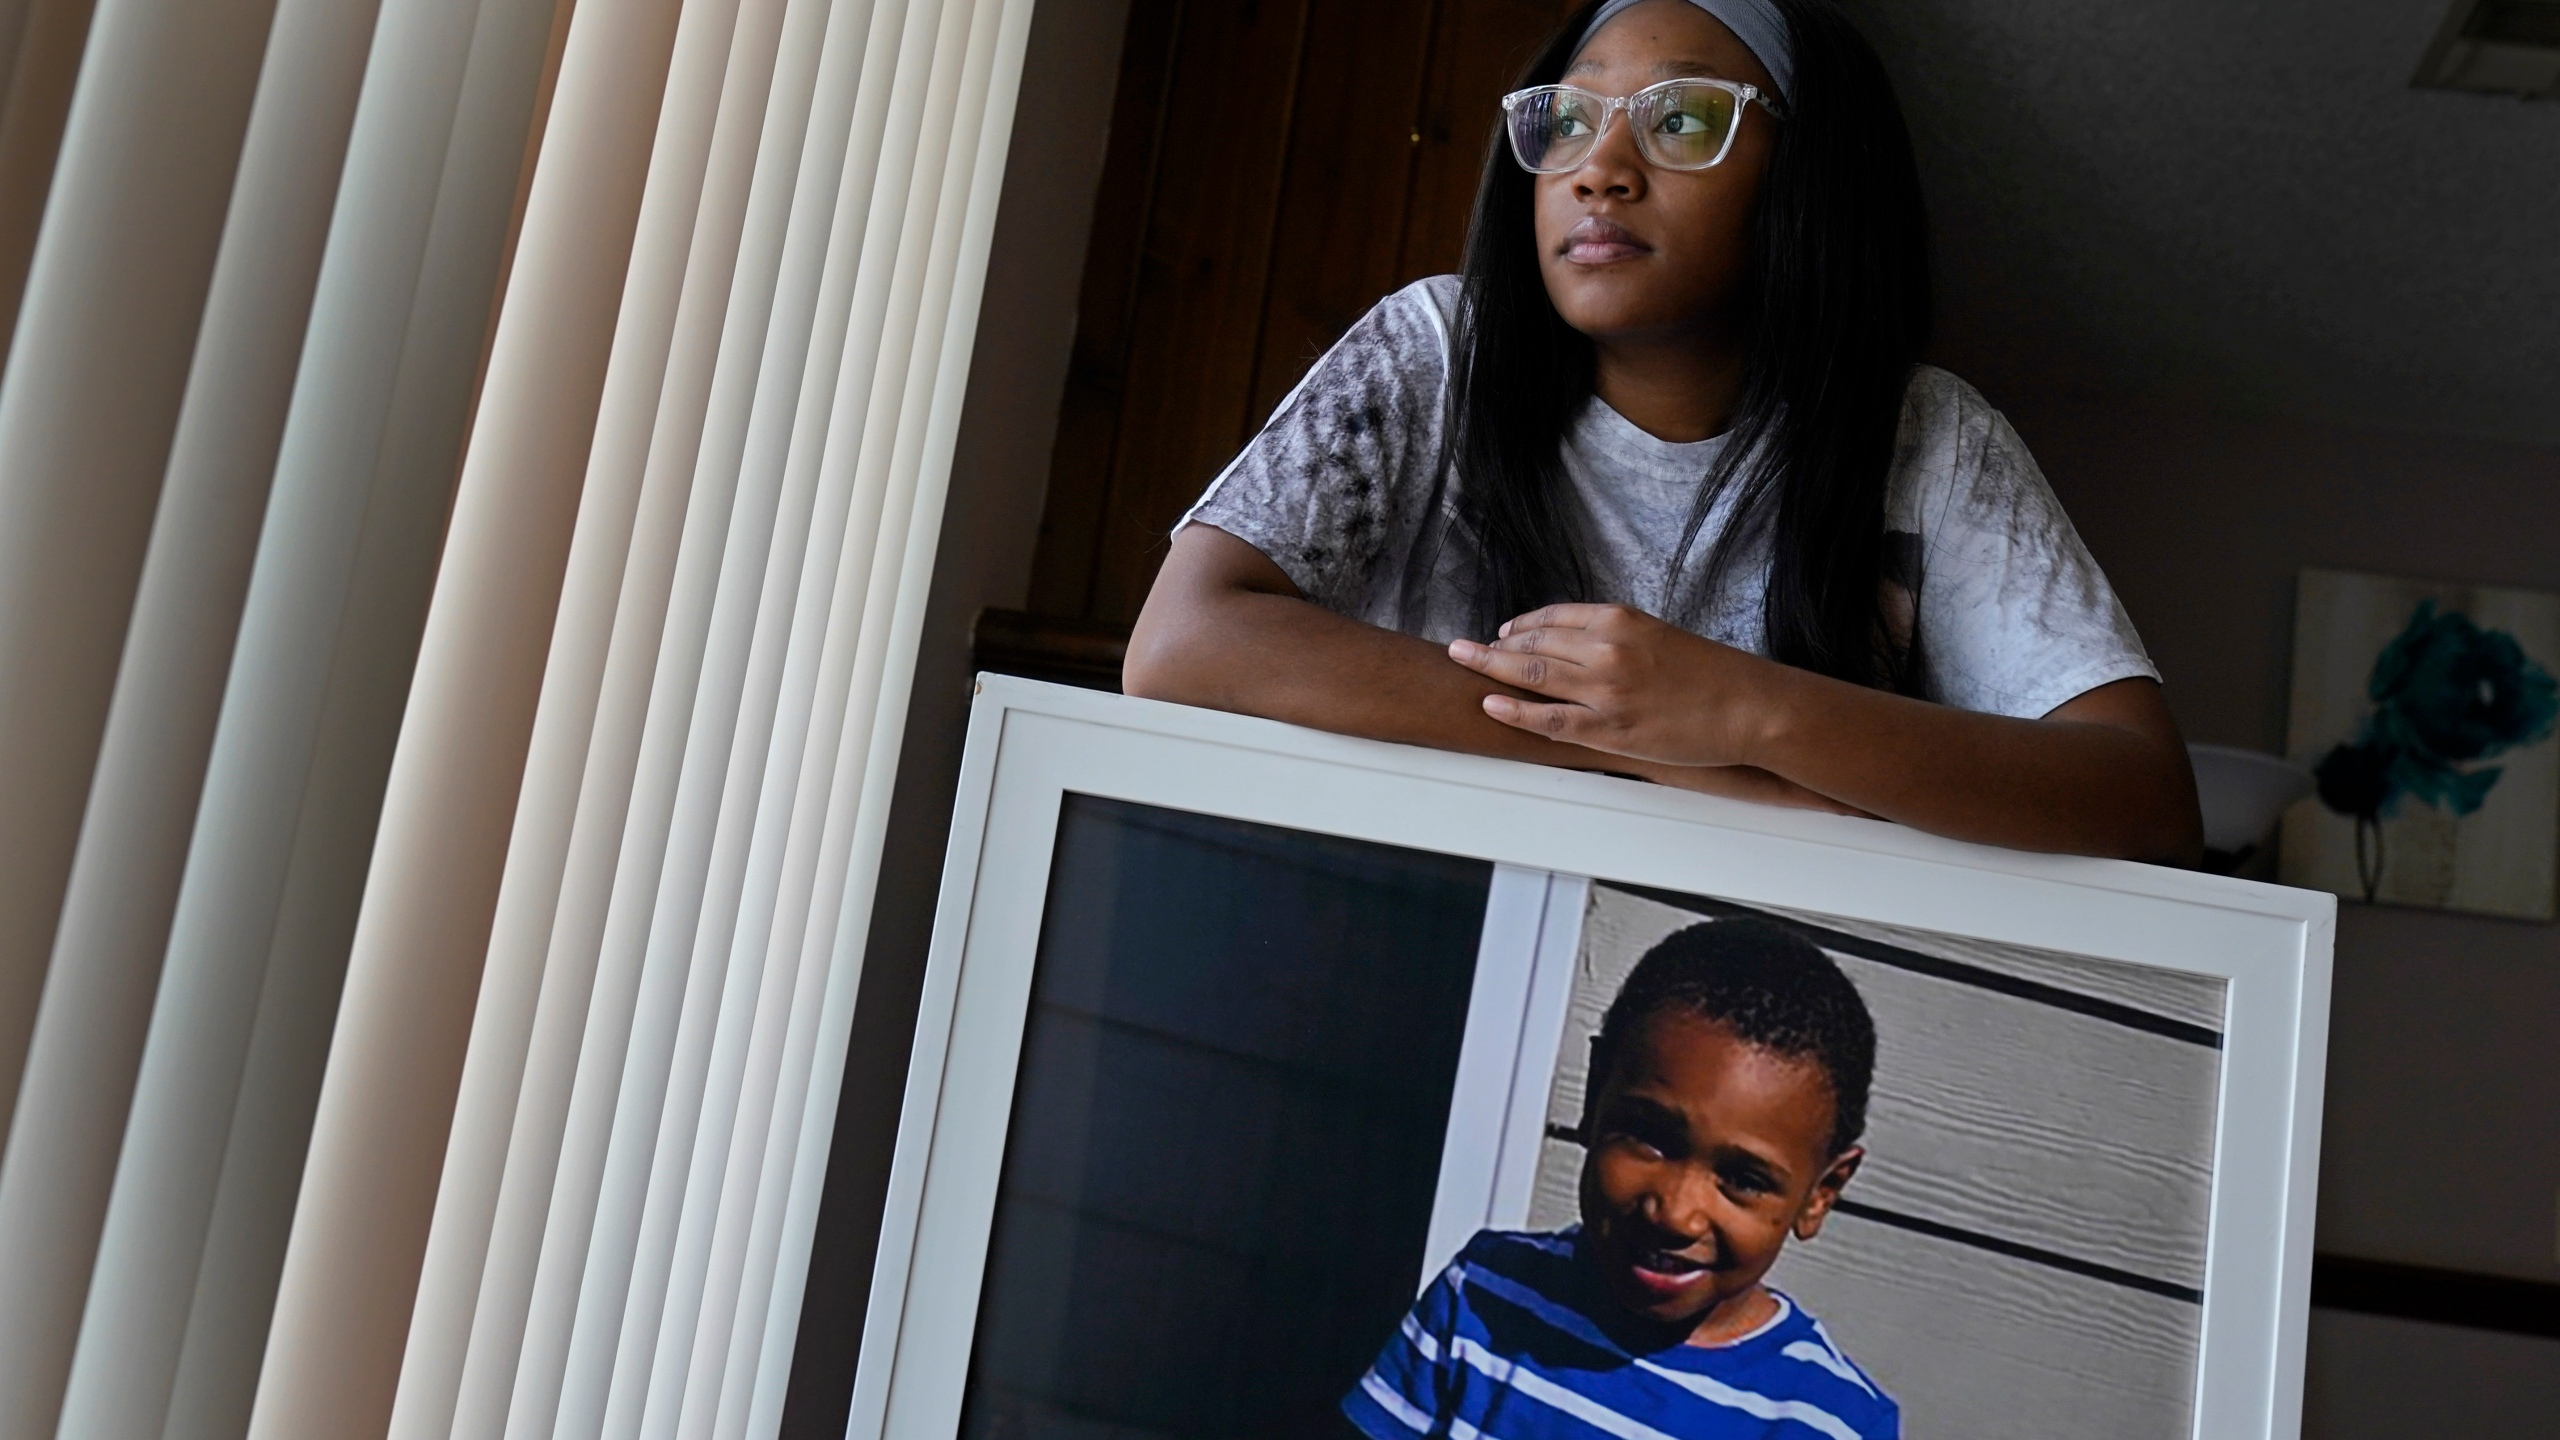 Charron Powell stands with a photo of her son, LeGend Talieferro, at her home in Raytown, Mo. on Sunday, Oct. 3, 2021. LeGend was 4 years old when he was fatally shot June 29, 2020 while he was sleeping in an apartment staying with his father. (AP Photo/Charlie Riedel)